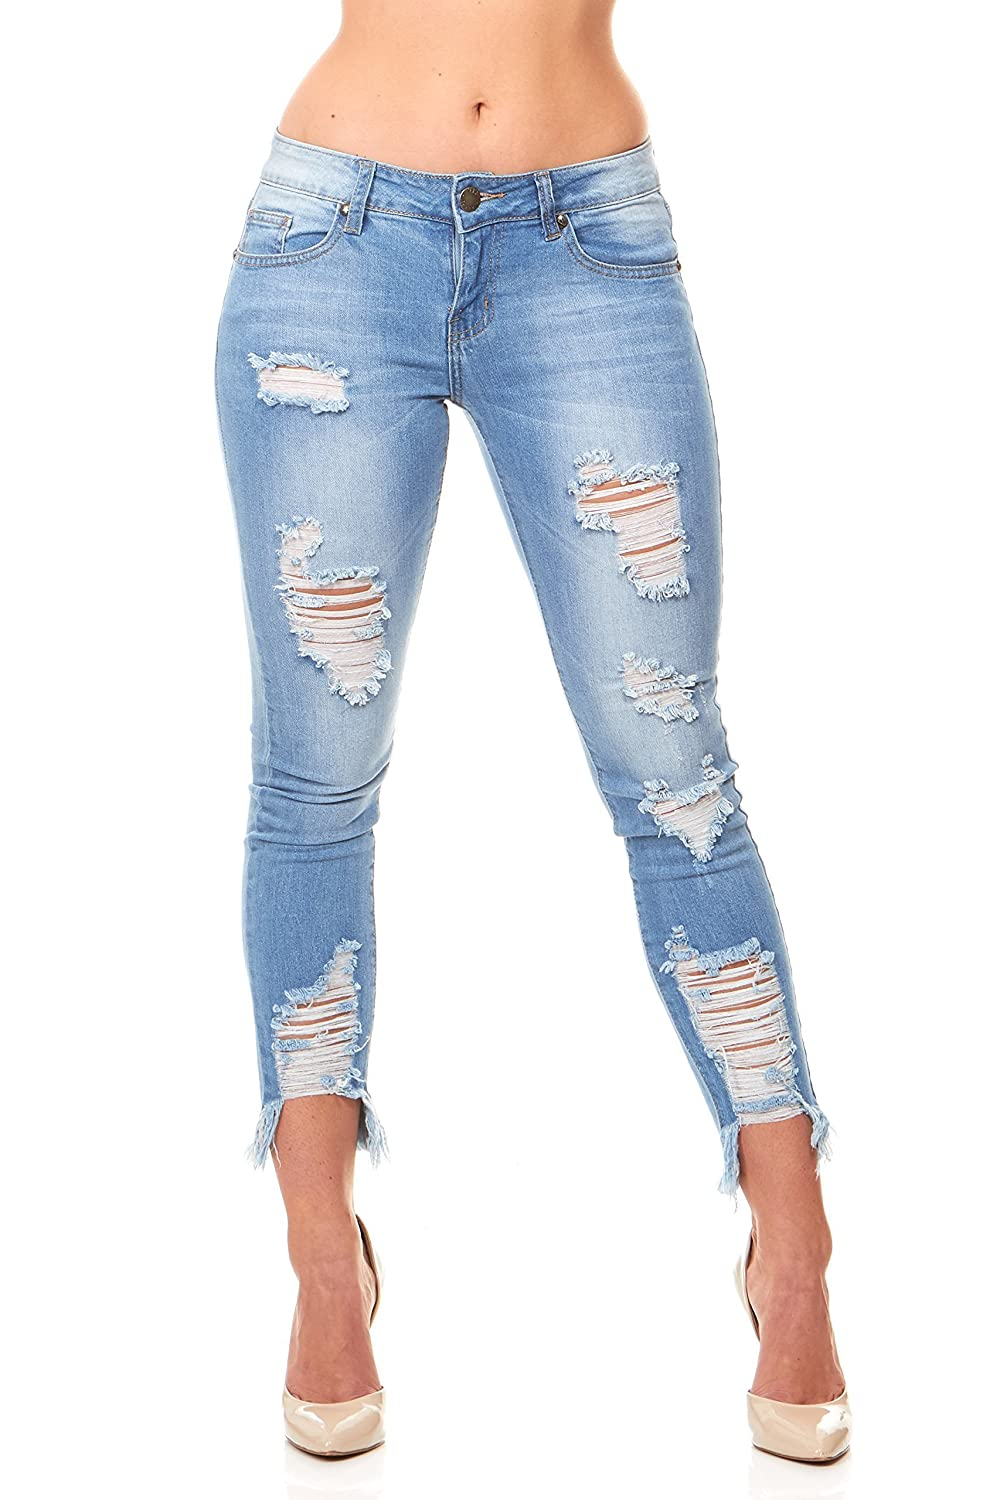 6f40384683e180 Ripped Distressed Patched Skinny Stretch Jeans for Women Bottom Cuff Low  Waisted Plus Size 14 Light Blue at Amazon Women's Jeans store